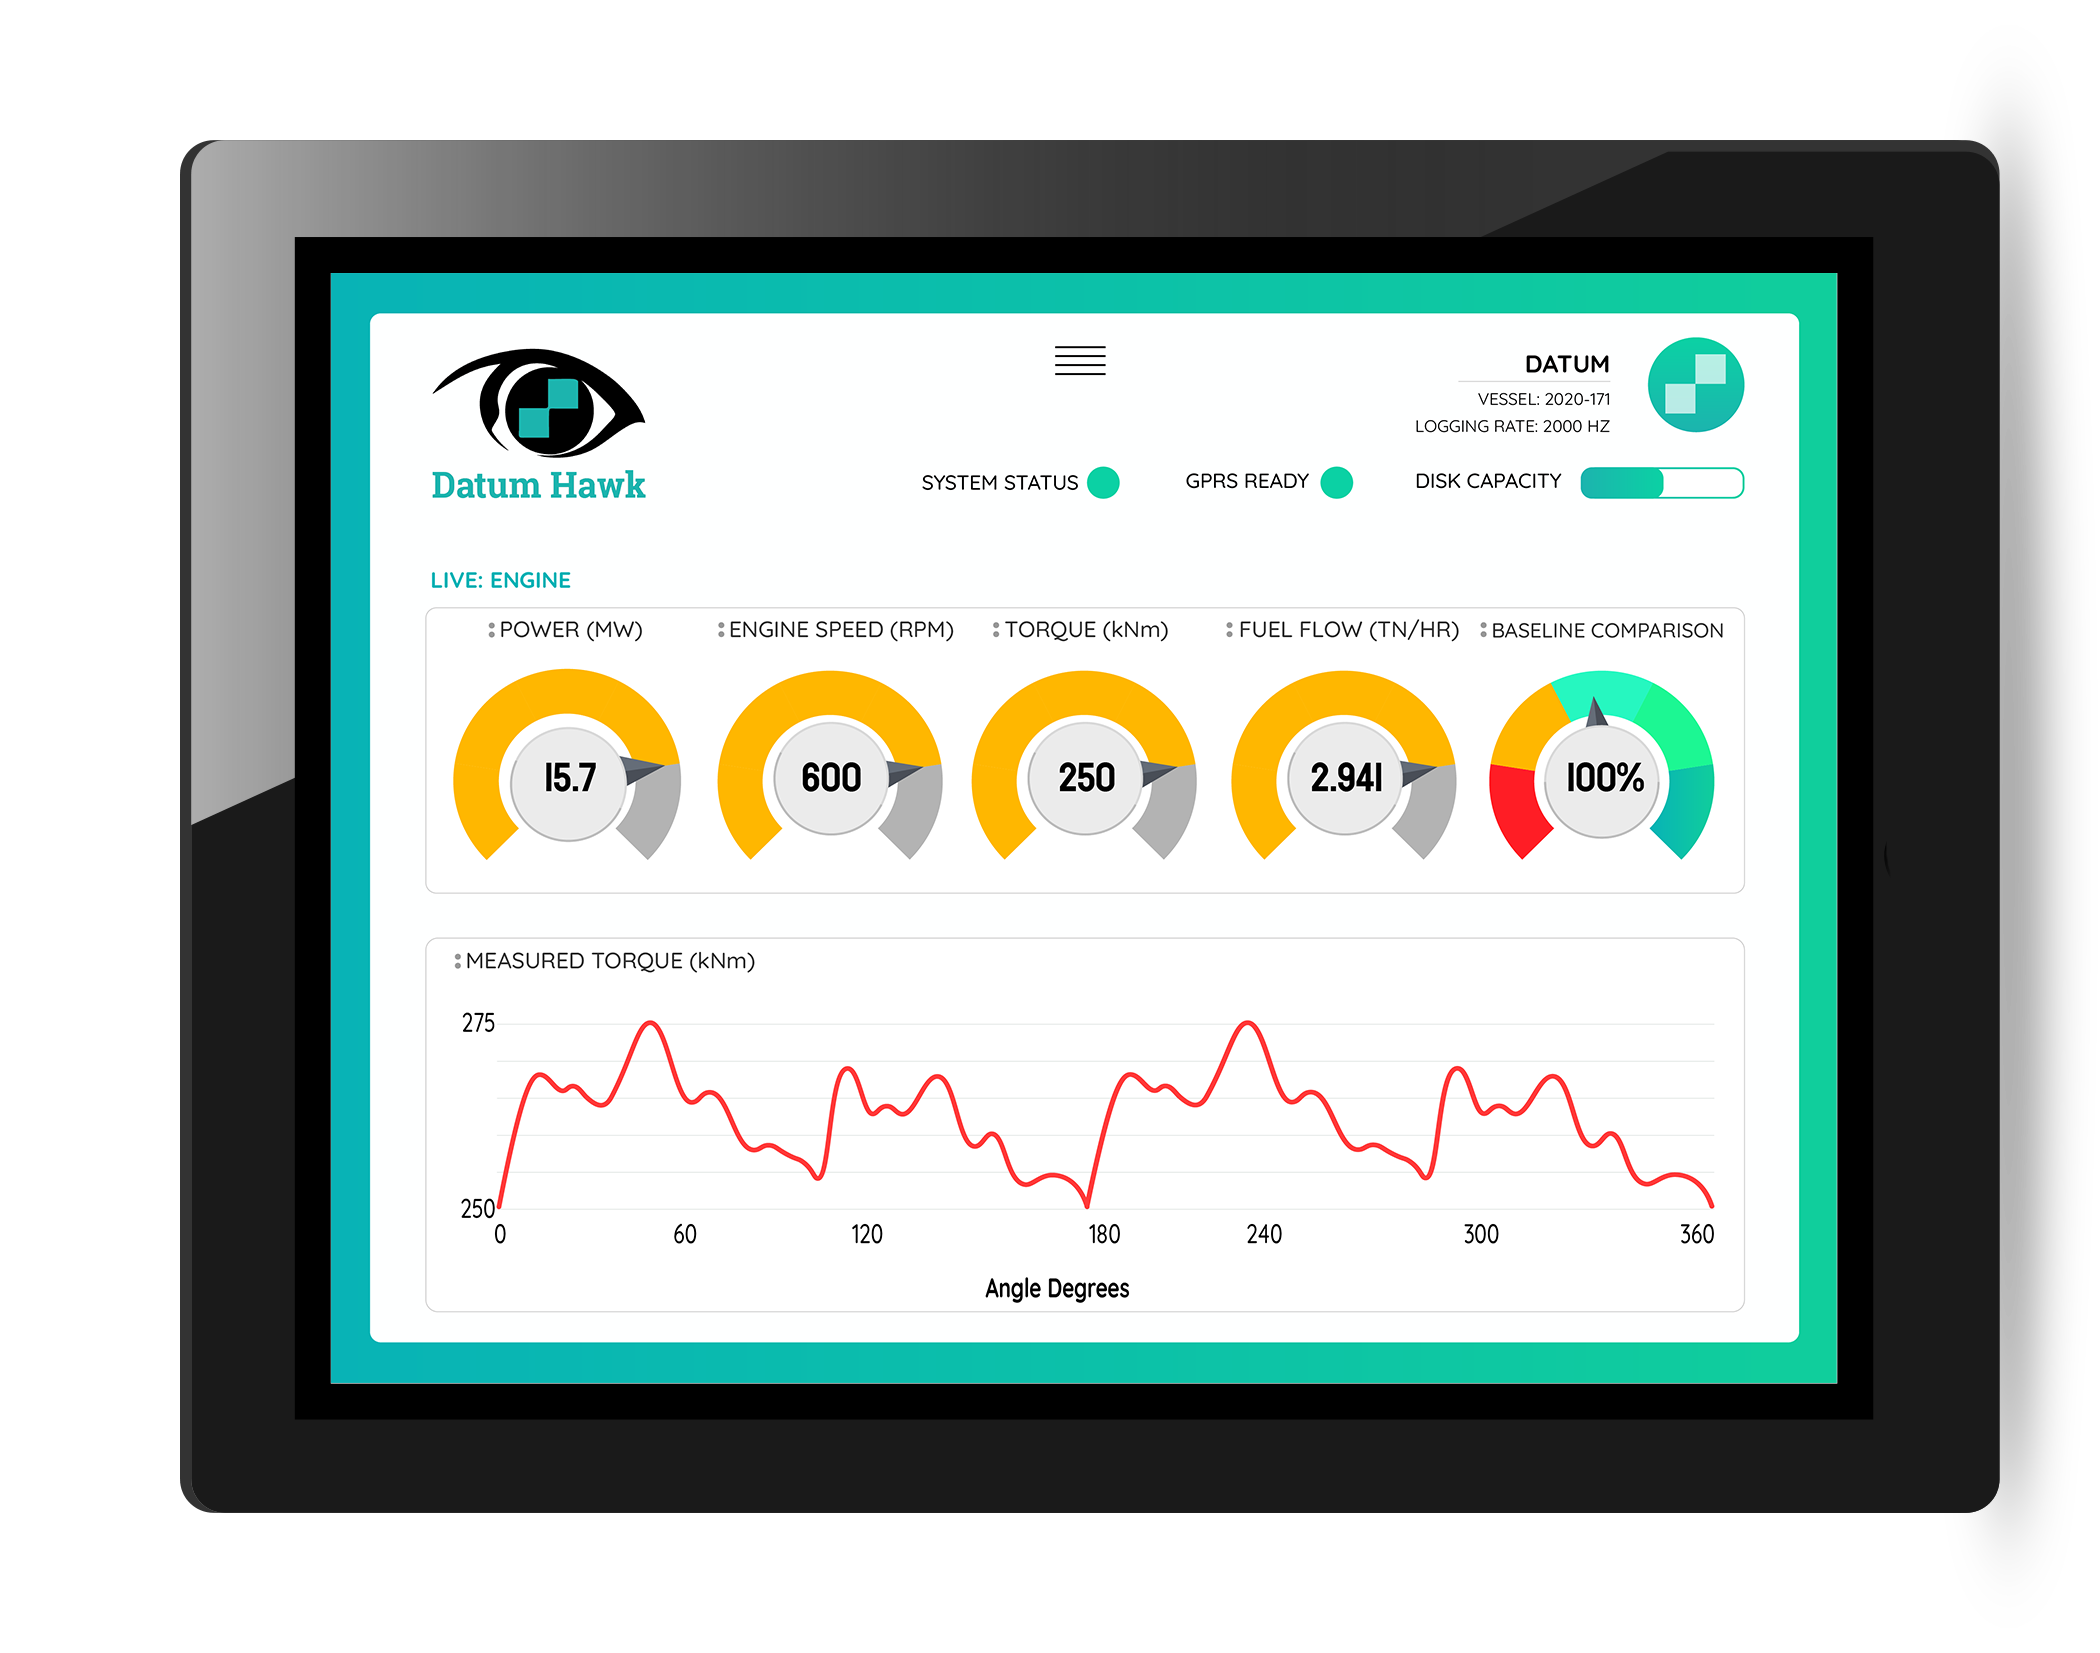 Datum Hawk Live Condition Monitoring and Predictive Maintenance Tool